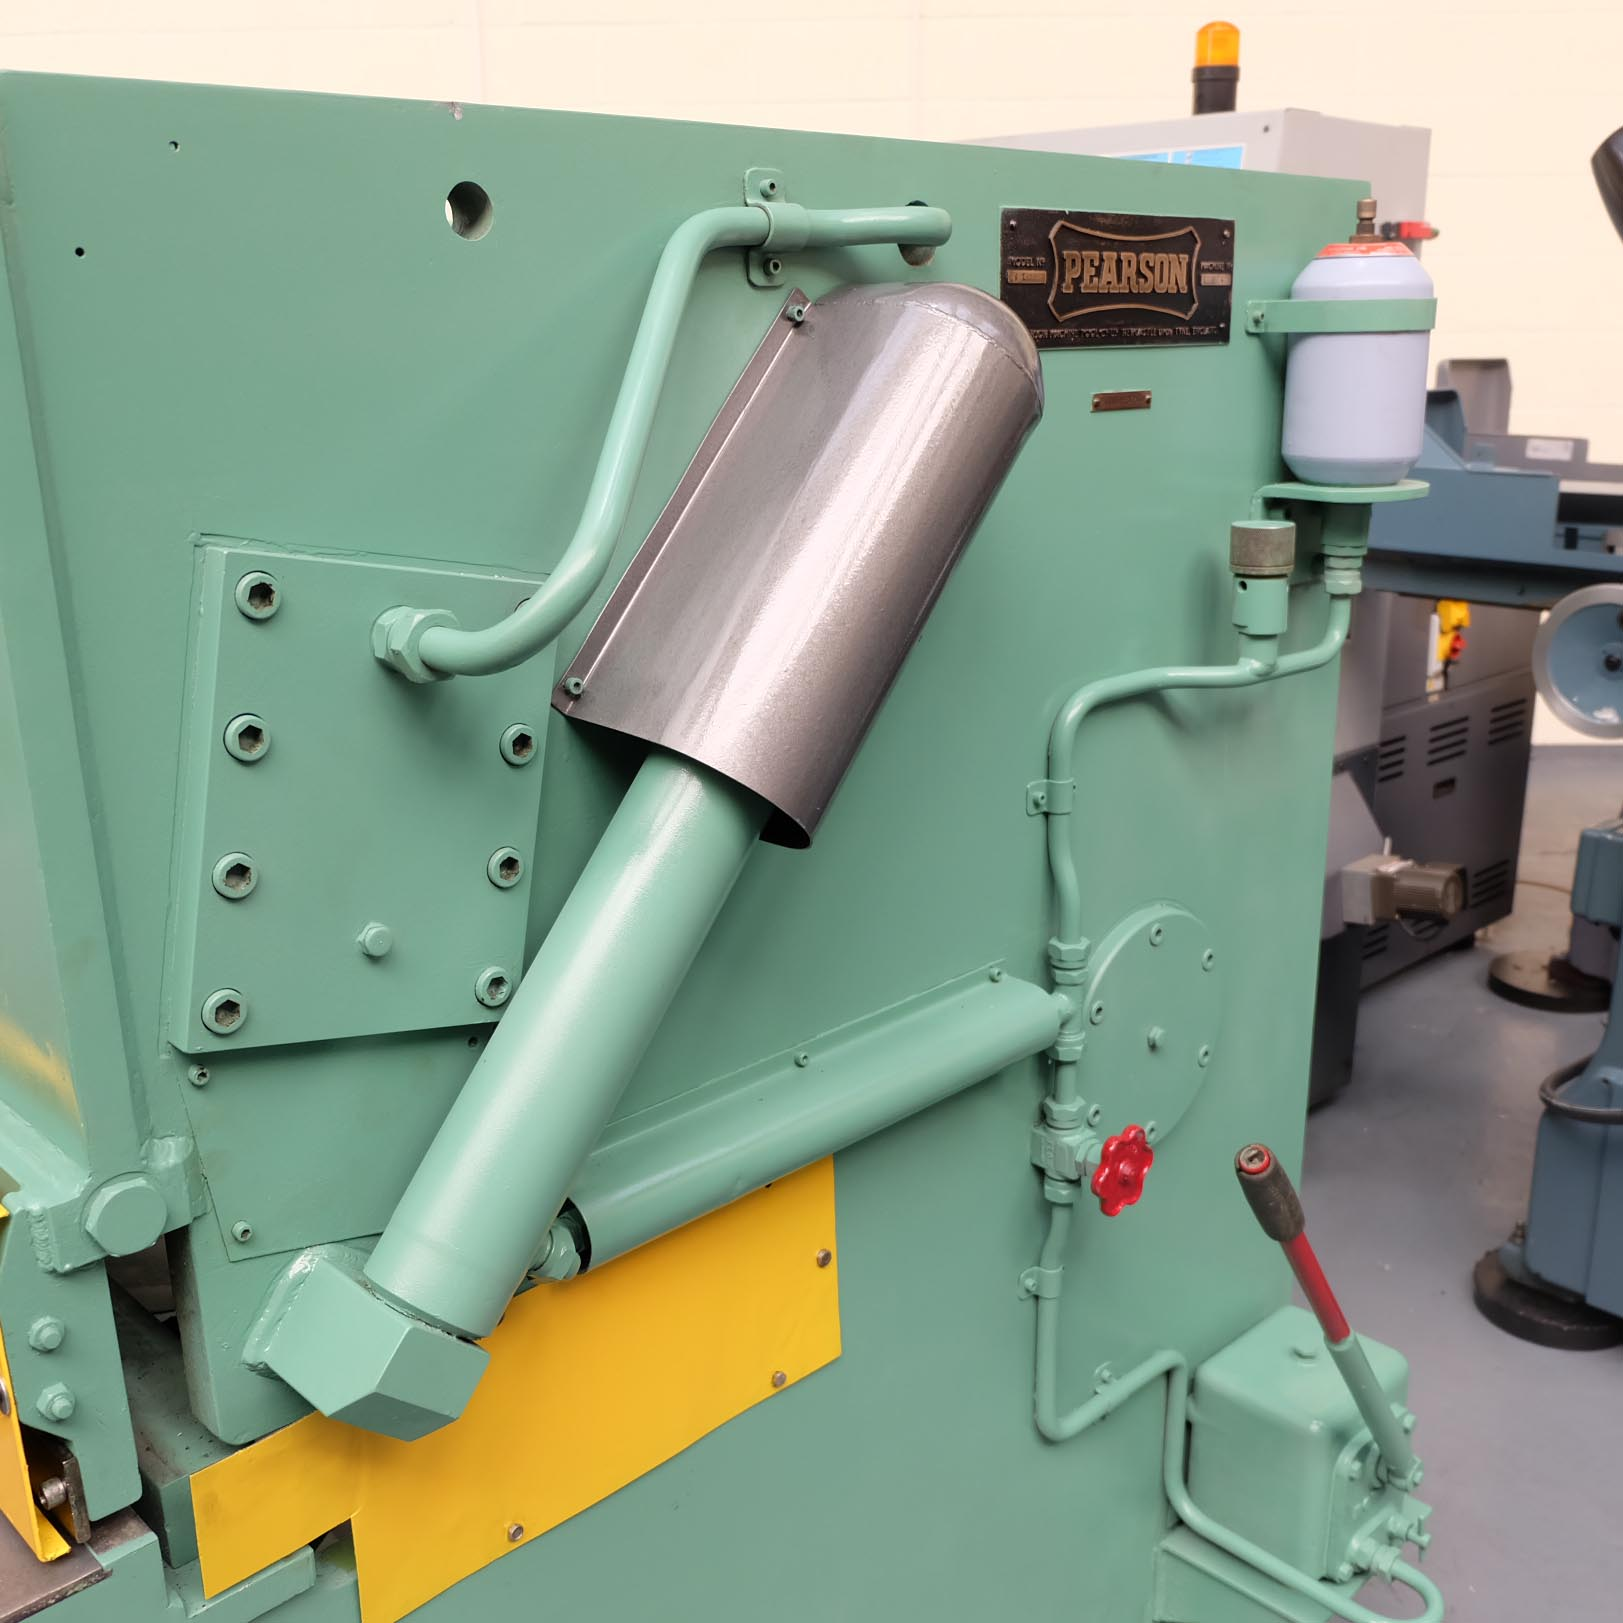 Pearson Type 8 x 25 Hydraulic Guillotine. - Image 6 of 7